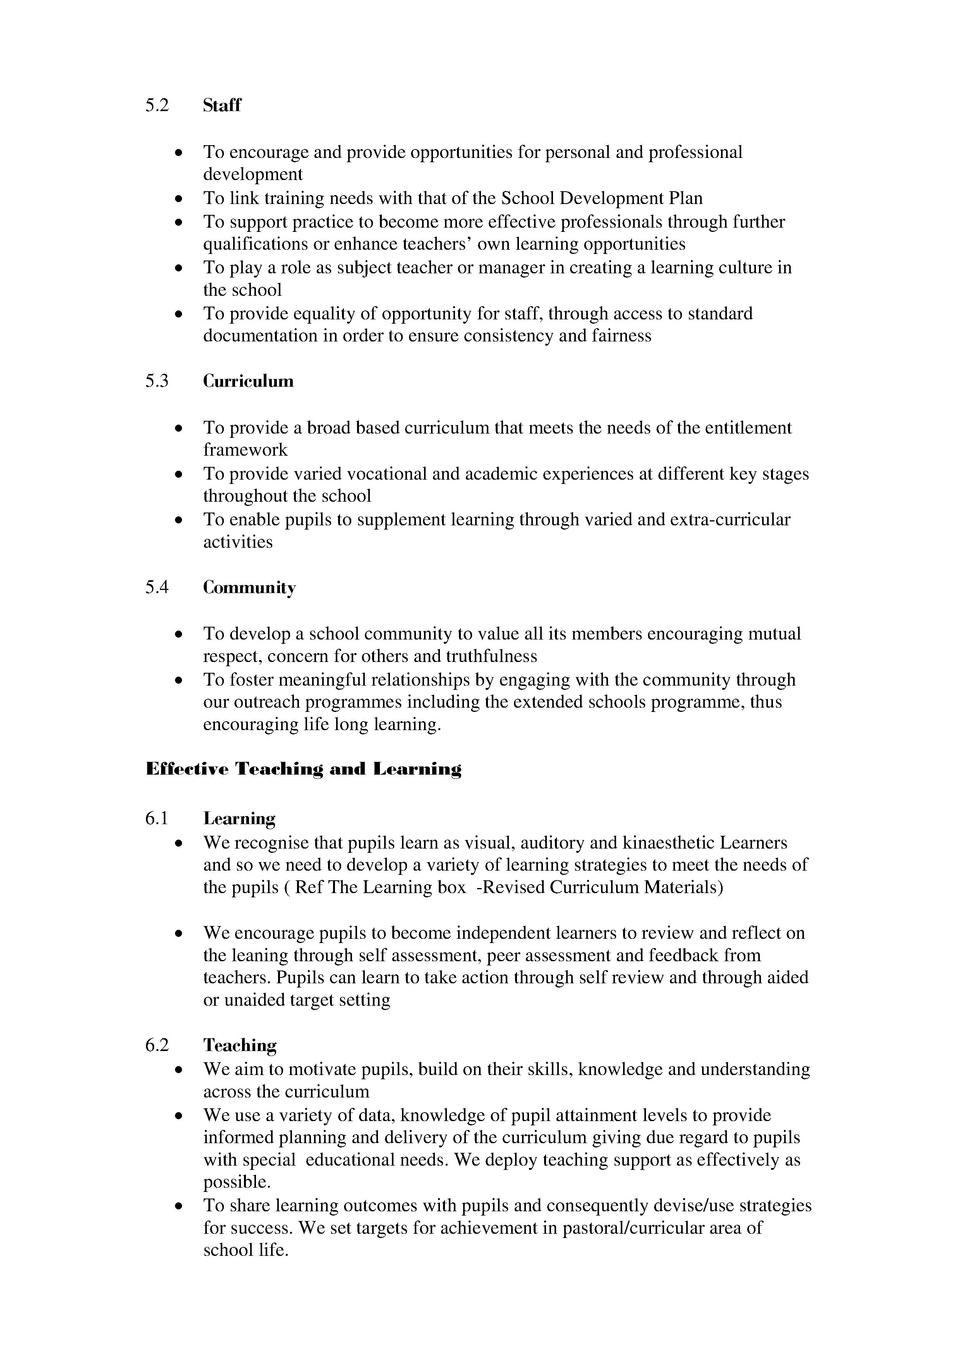 Staff  5.2                      To encourage and provide opportunities for personal and professional development To link t...